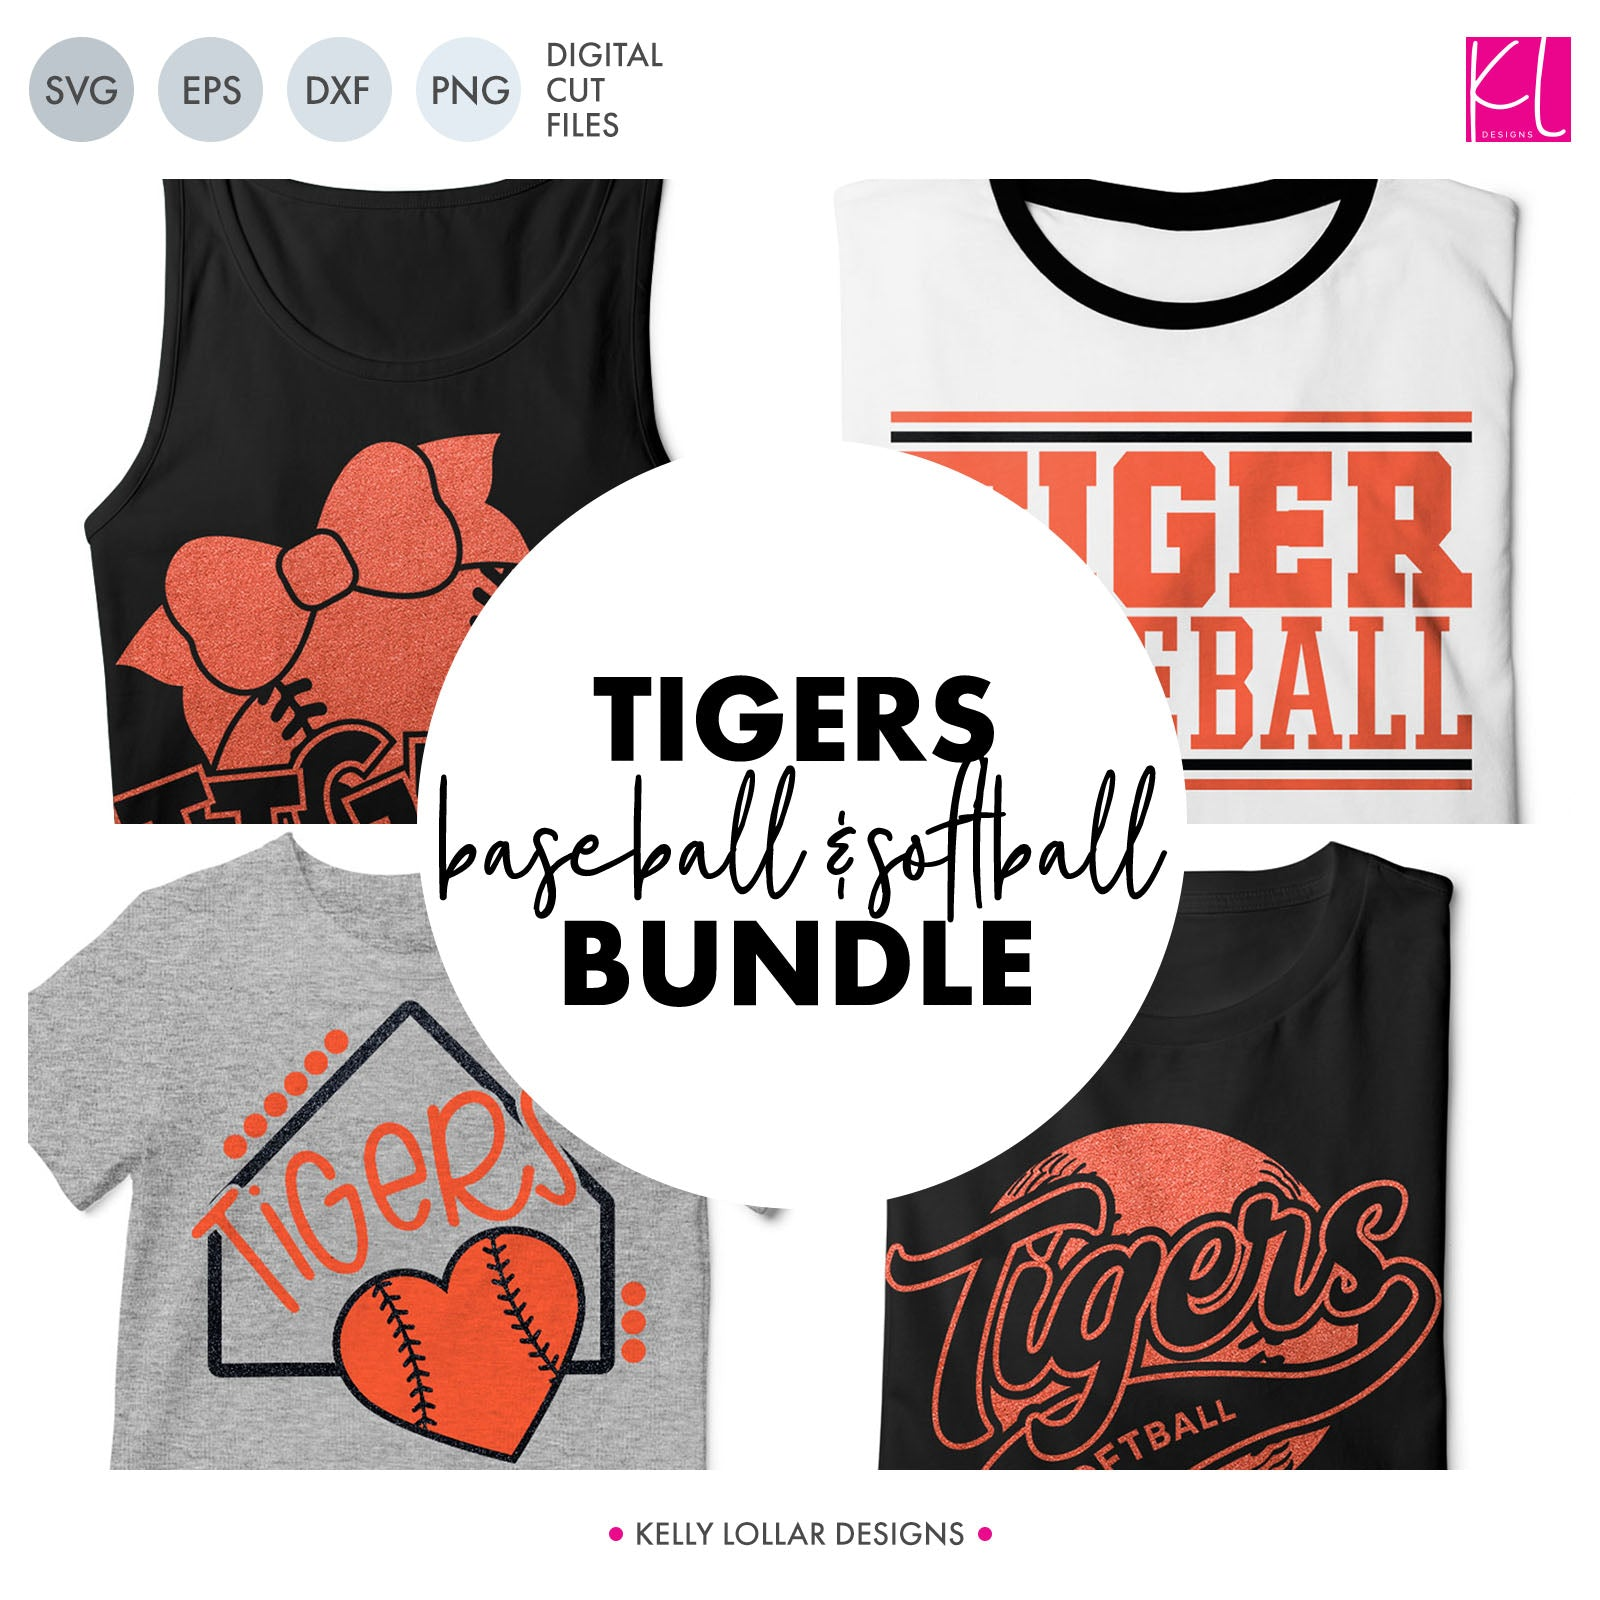 Tigers Baseball & Softball Bundle | SVG DXF EPS PNG Cut Files It's baseball and softball season, so Tiger crafter know what that means ... new spirit shirts! This fifteen-piece bundle includes a little something for everyone - from girly and cute